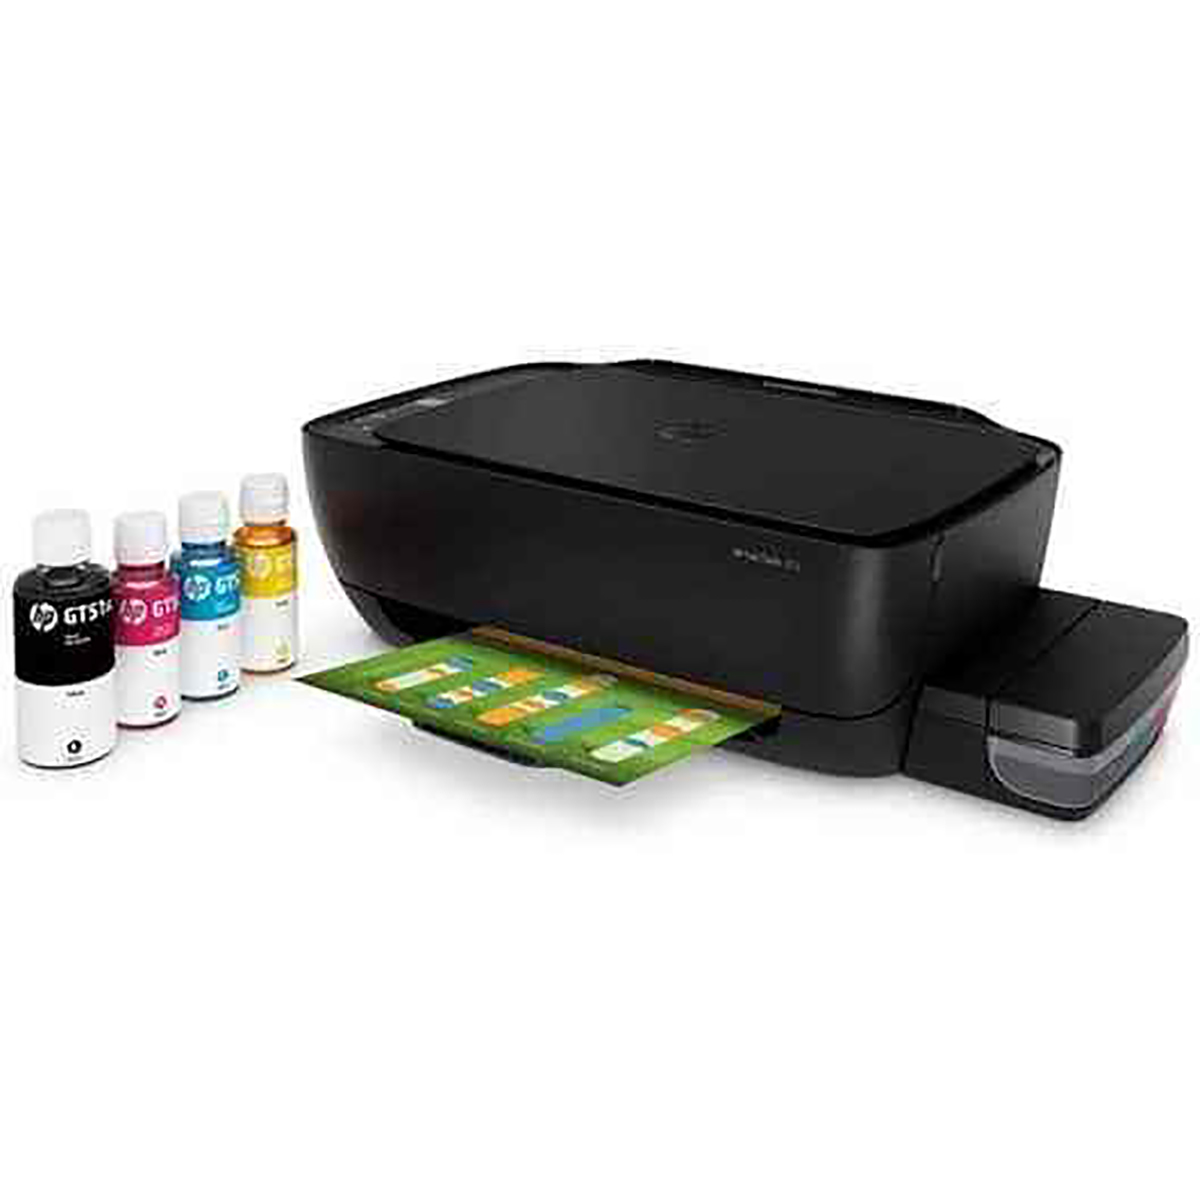 HP 315 All-in-One Ink Tank